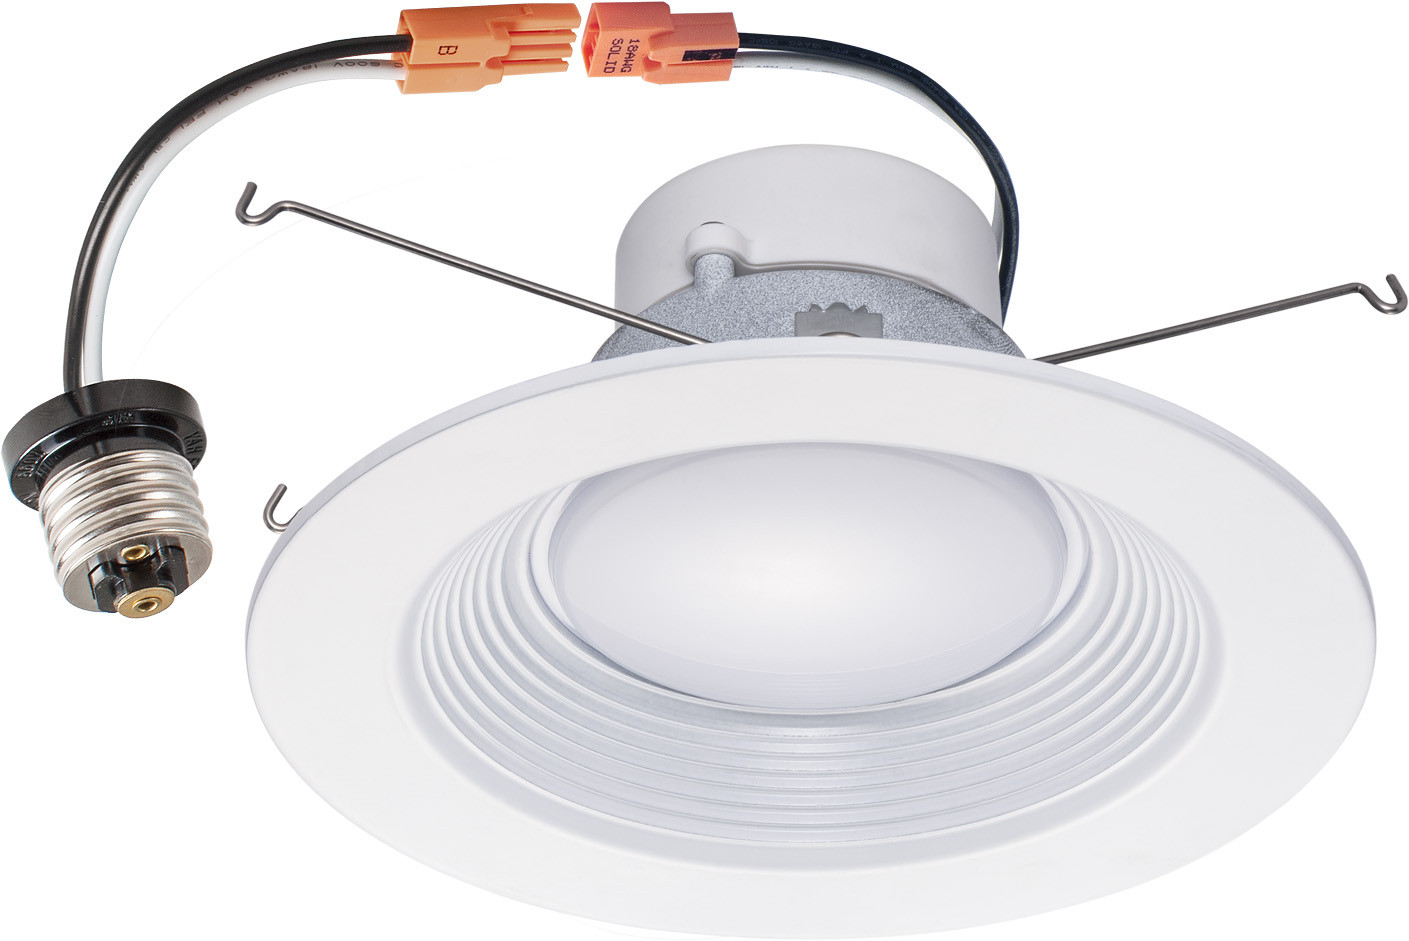 Best ideas about Recessed Lighting Led . Save or Pin Downlight Trim 12 Pack 5 6 Inch 16W LED Recessed Dimmable Now.